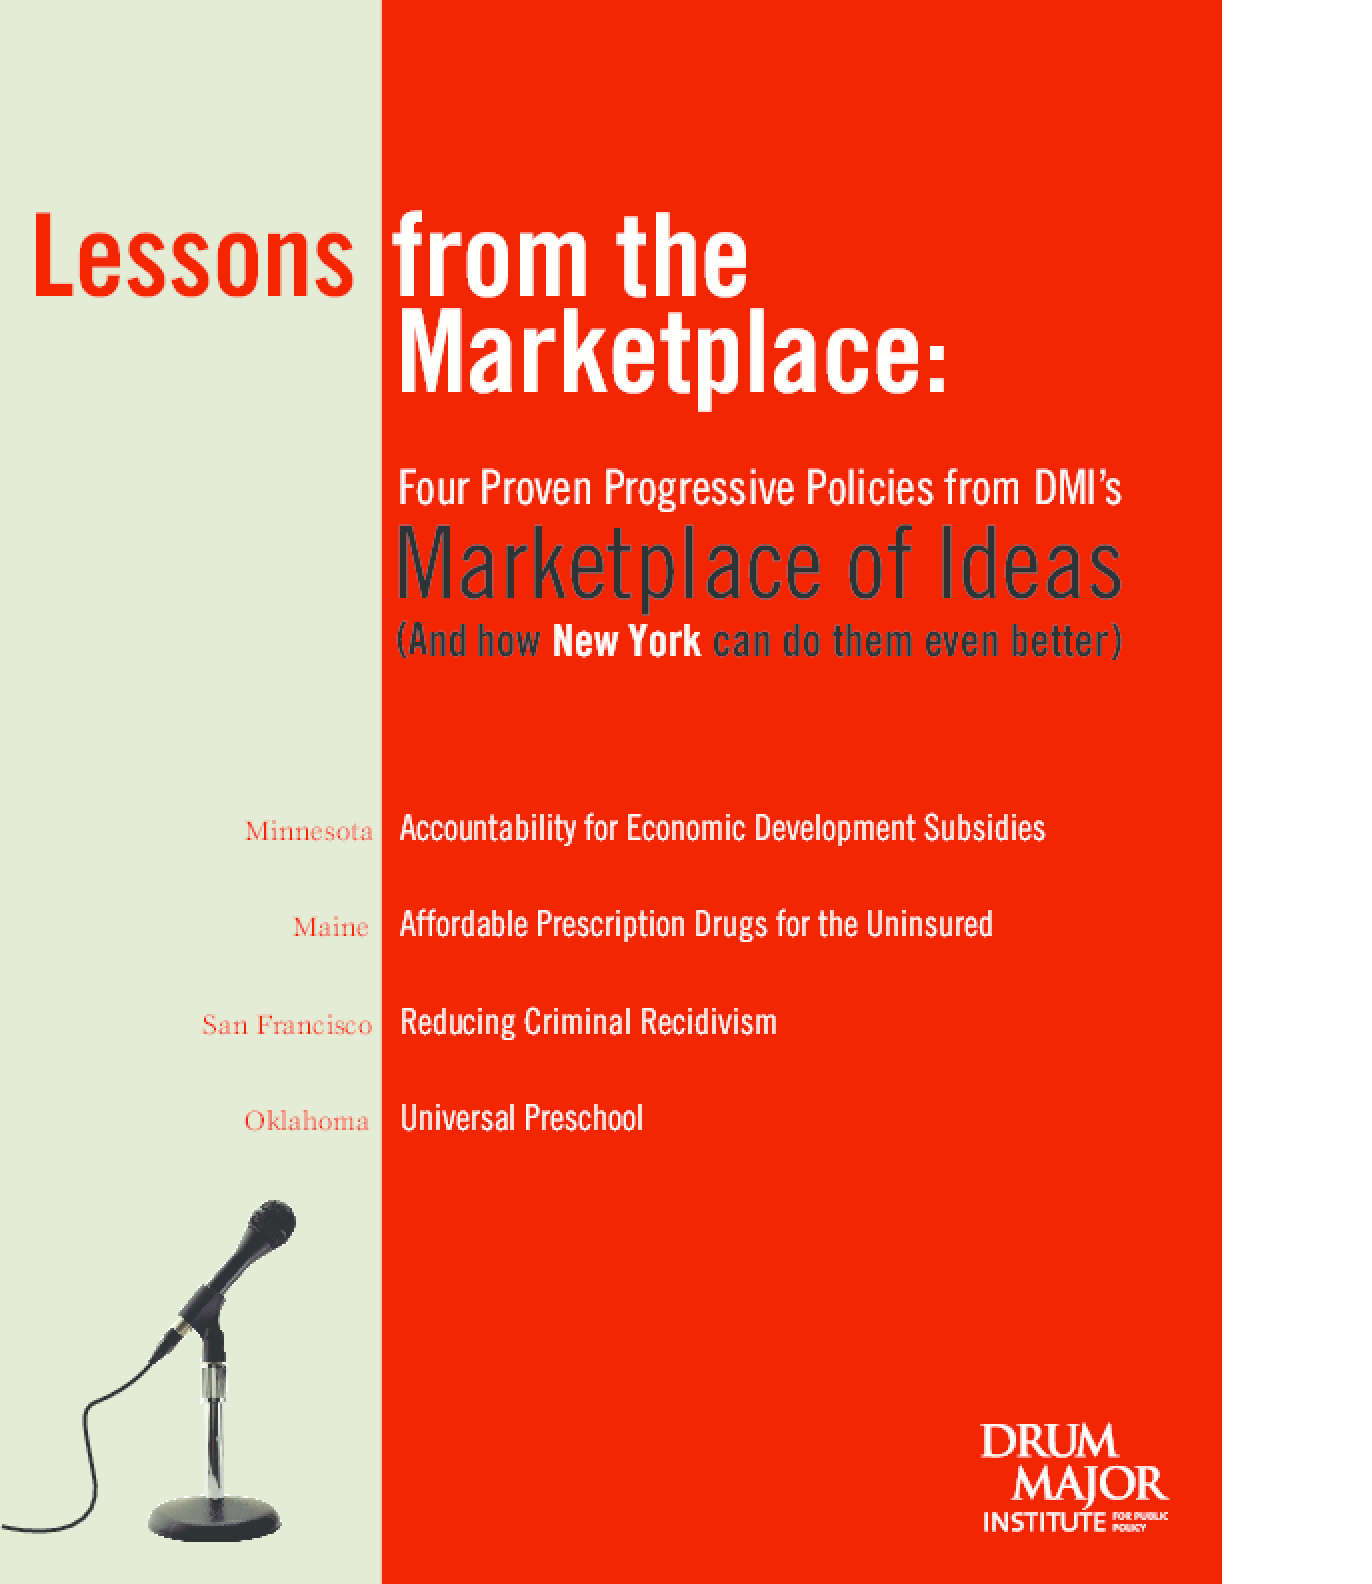 Lessons From The Marketplace: Four Proven Progressive Policies from DMI's Marketplace of Ideas